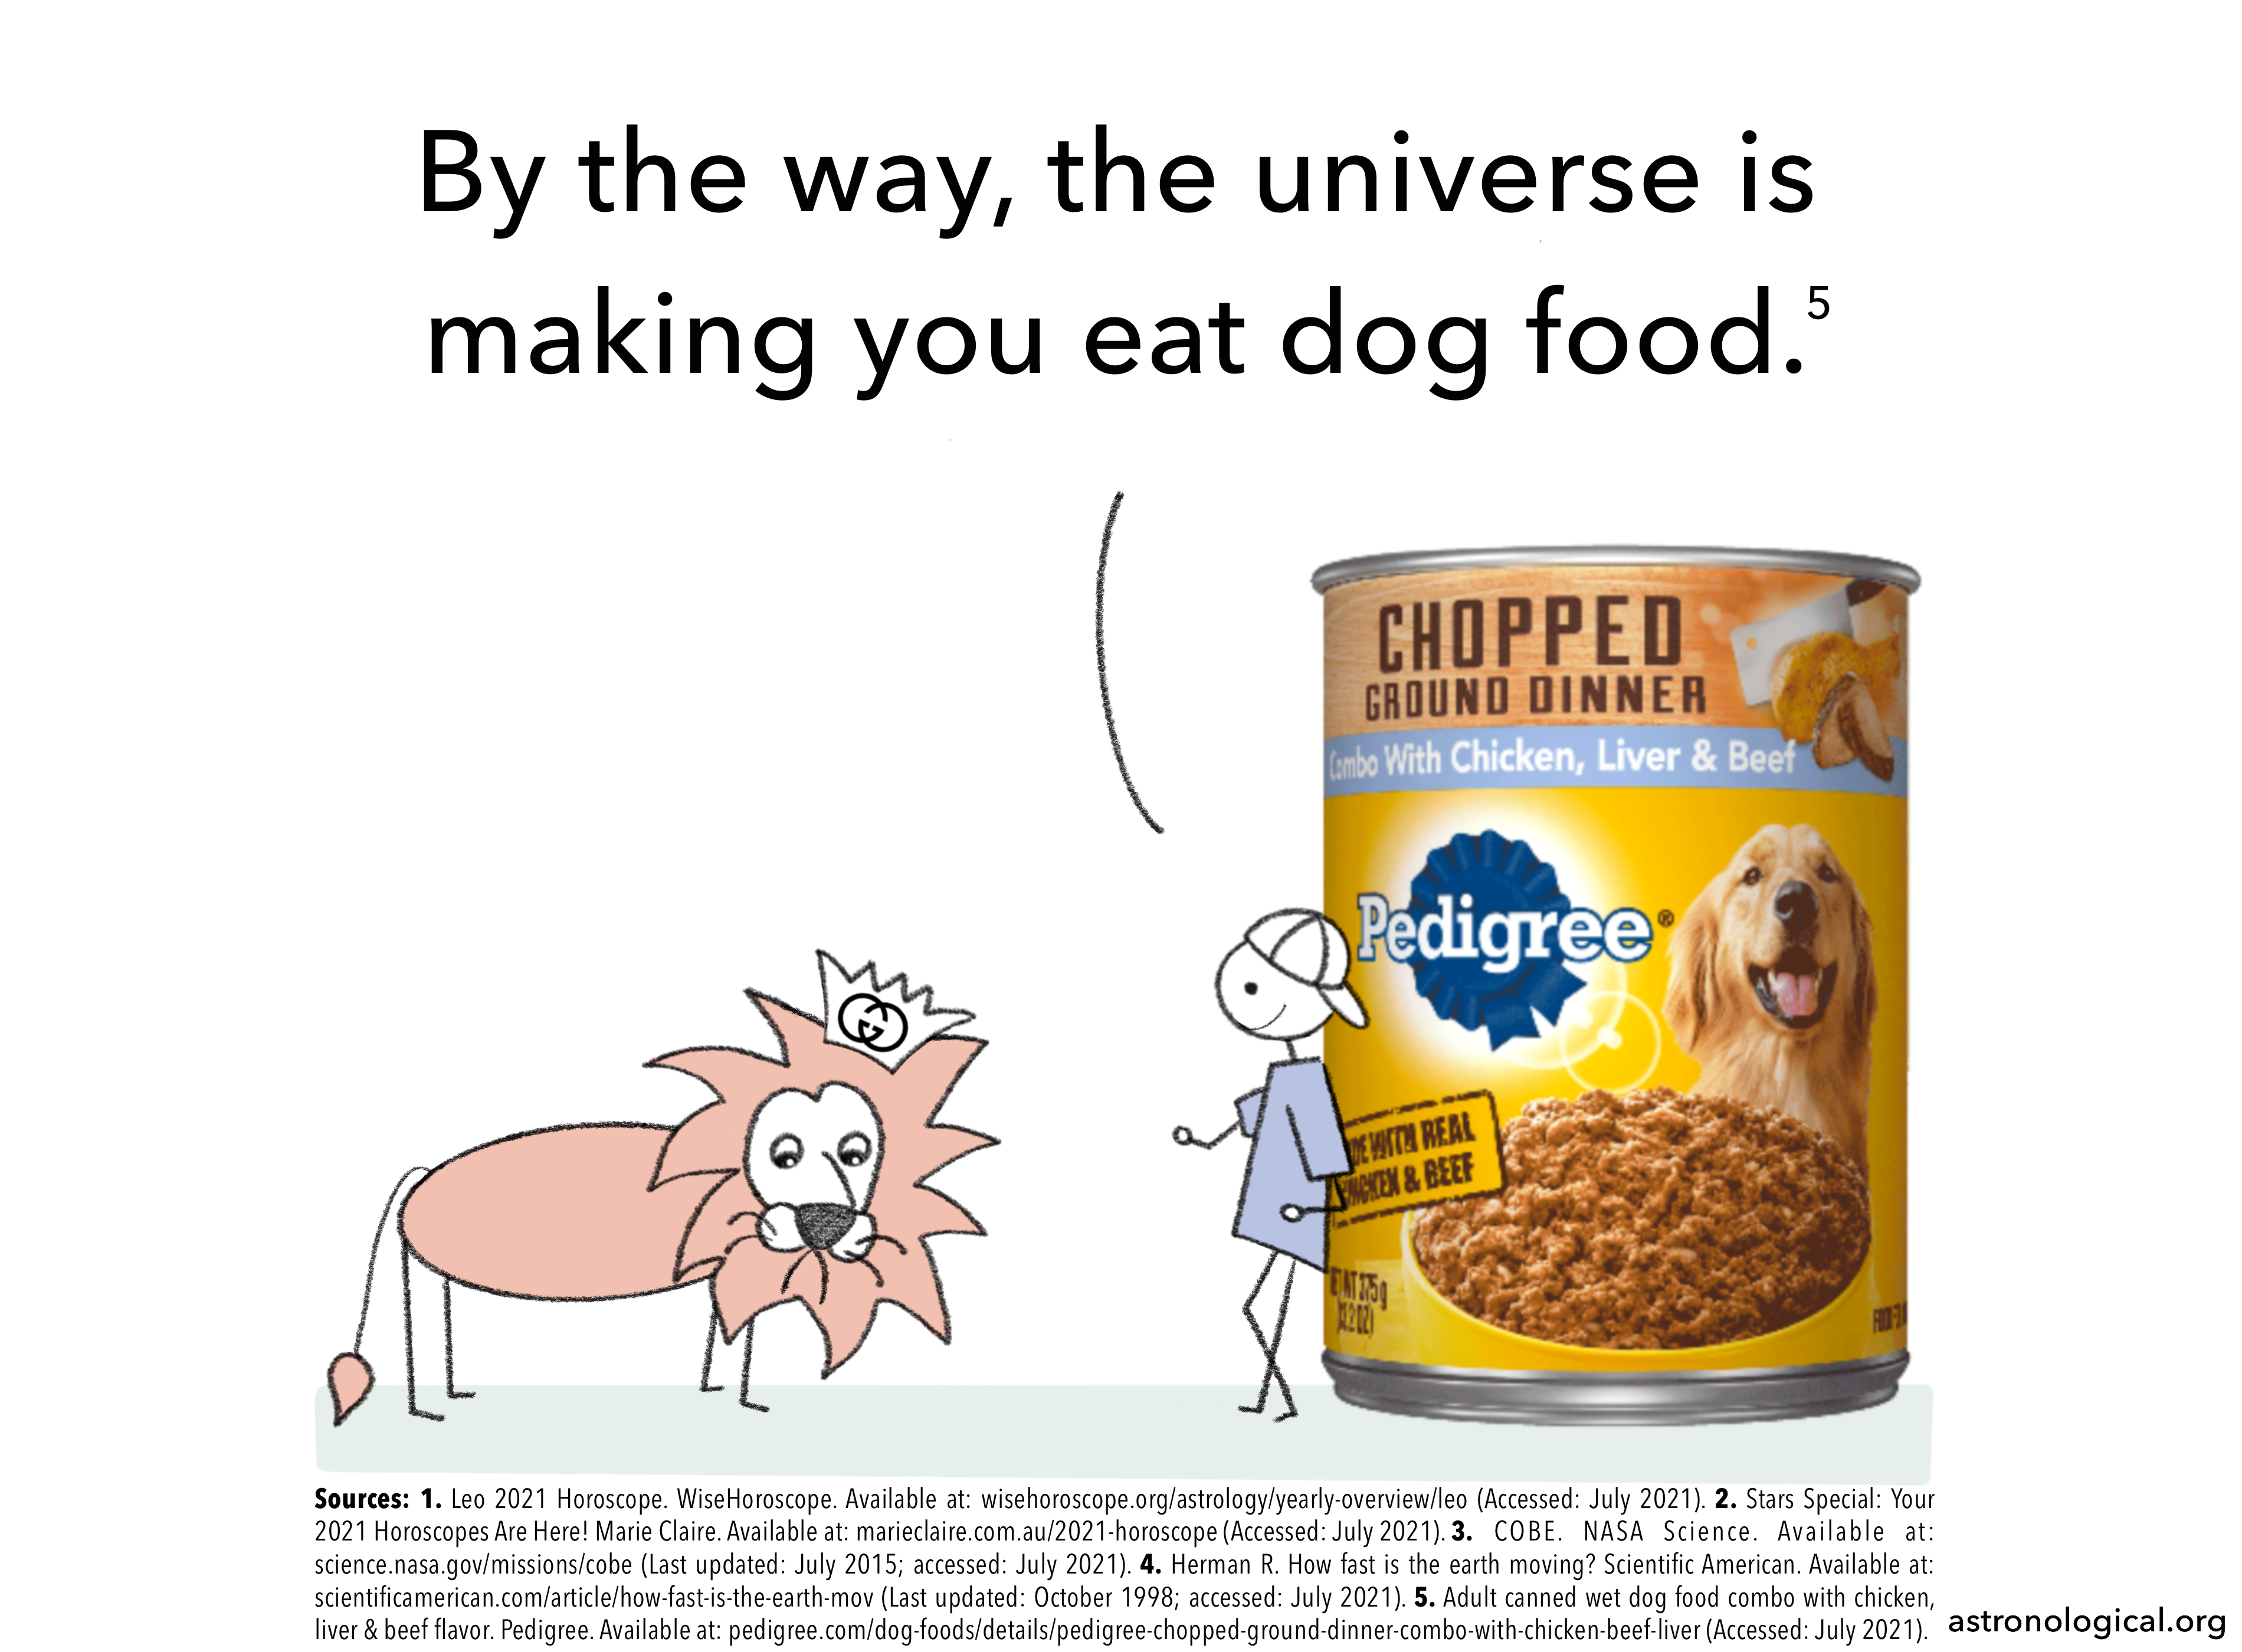 The scientist adds: By the way, the universe is making you eat dog food. The lion now looks very dejected.